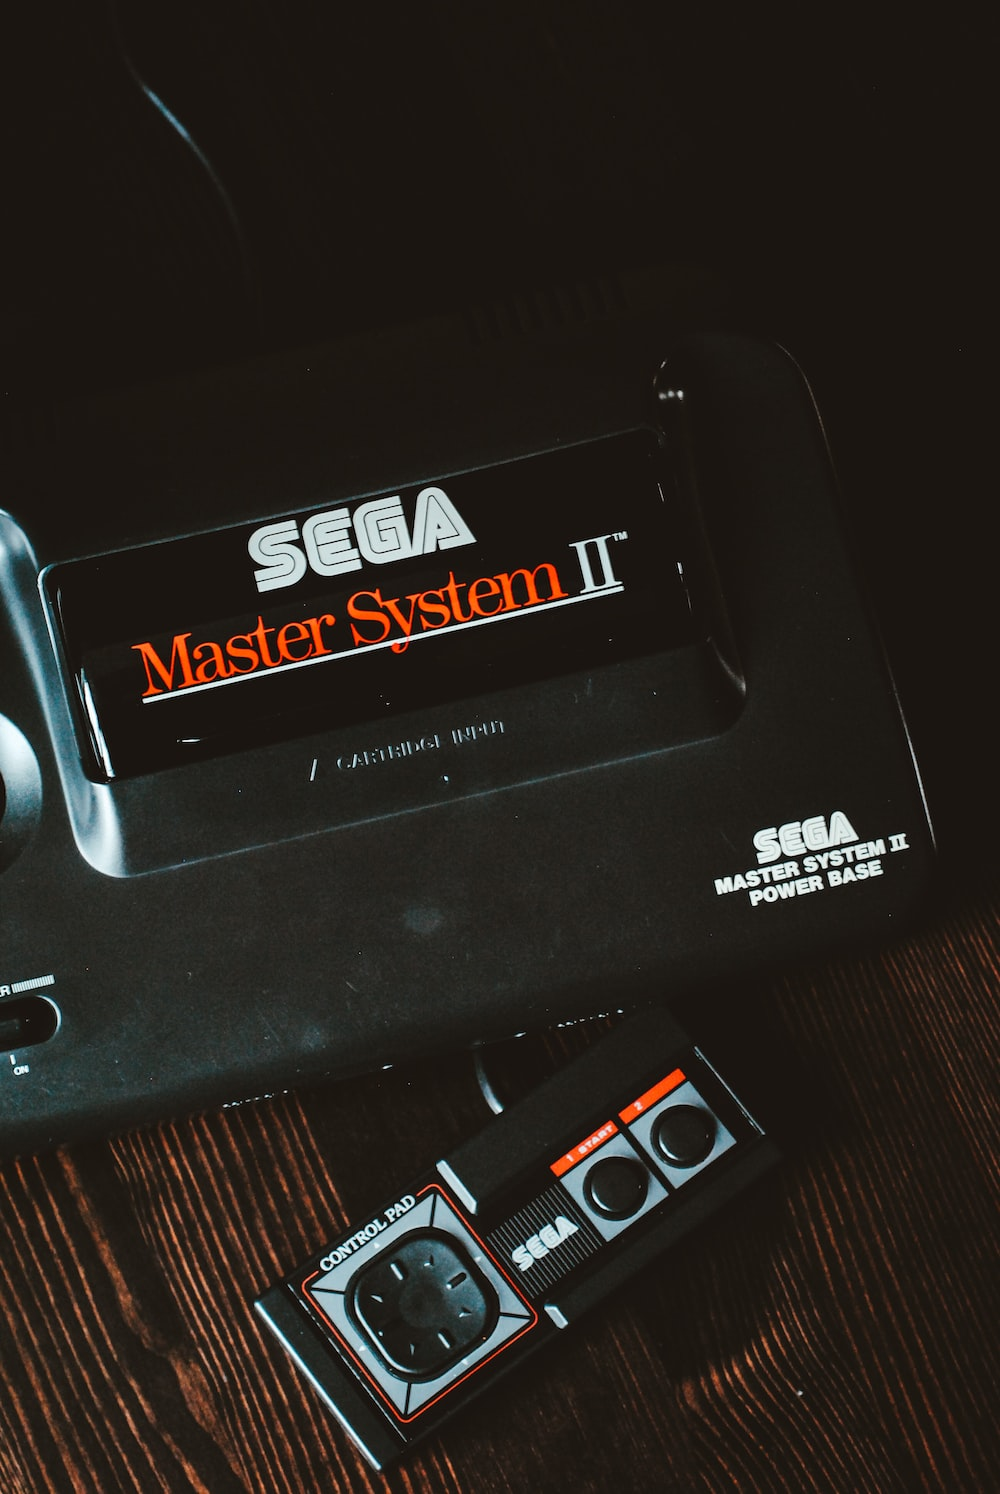 black Sega Master System II device on brown wooden surface